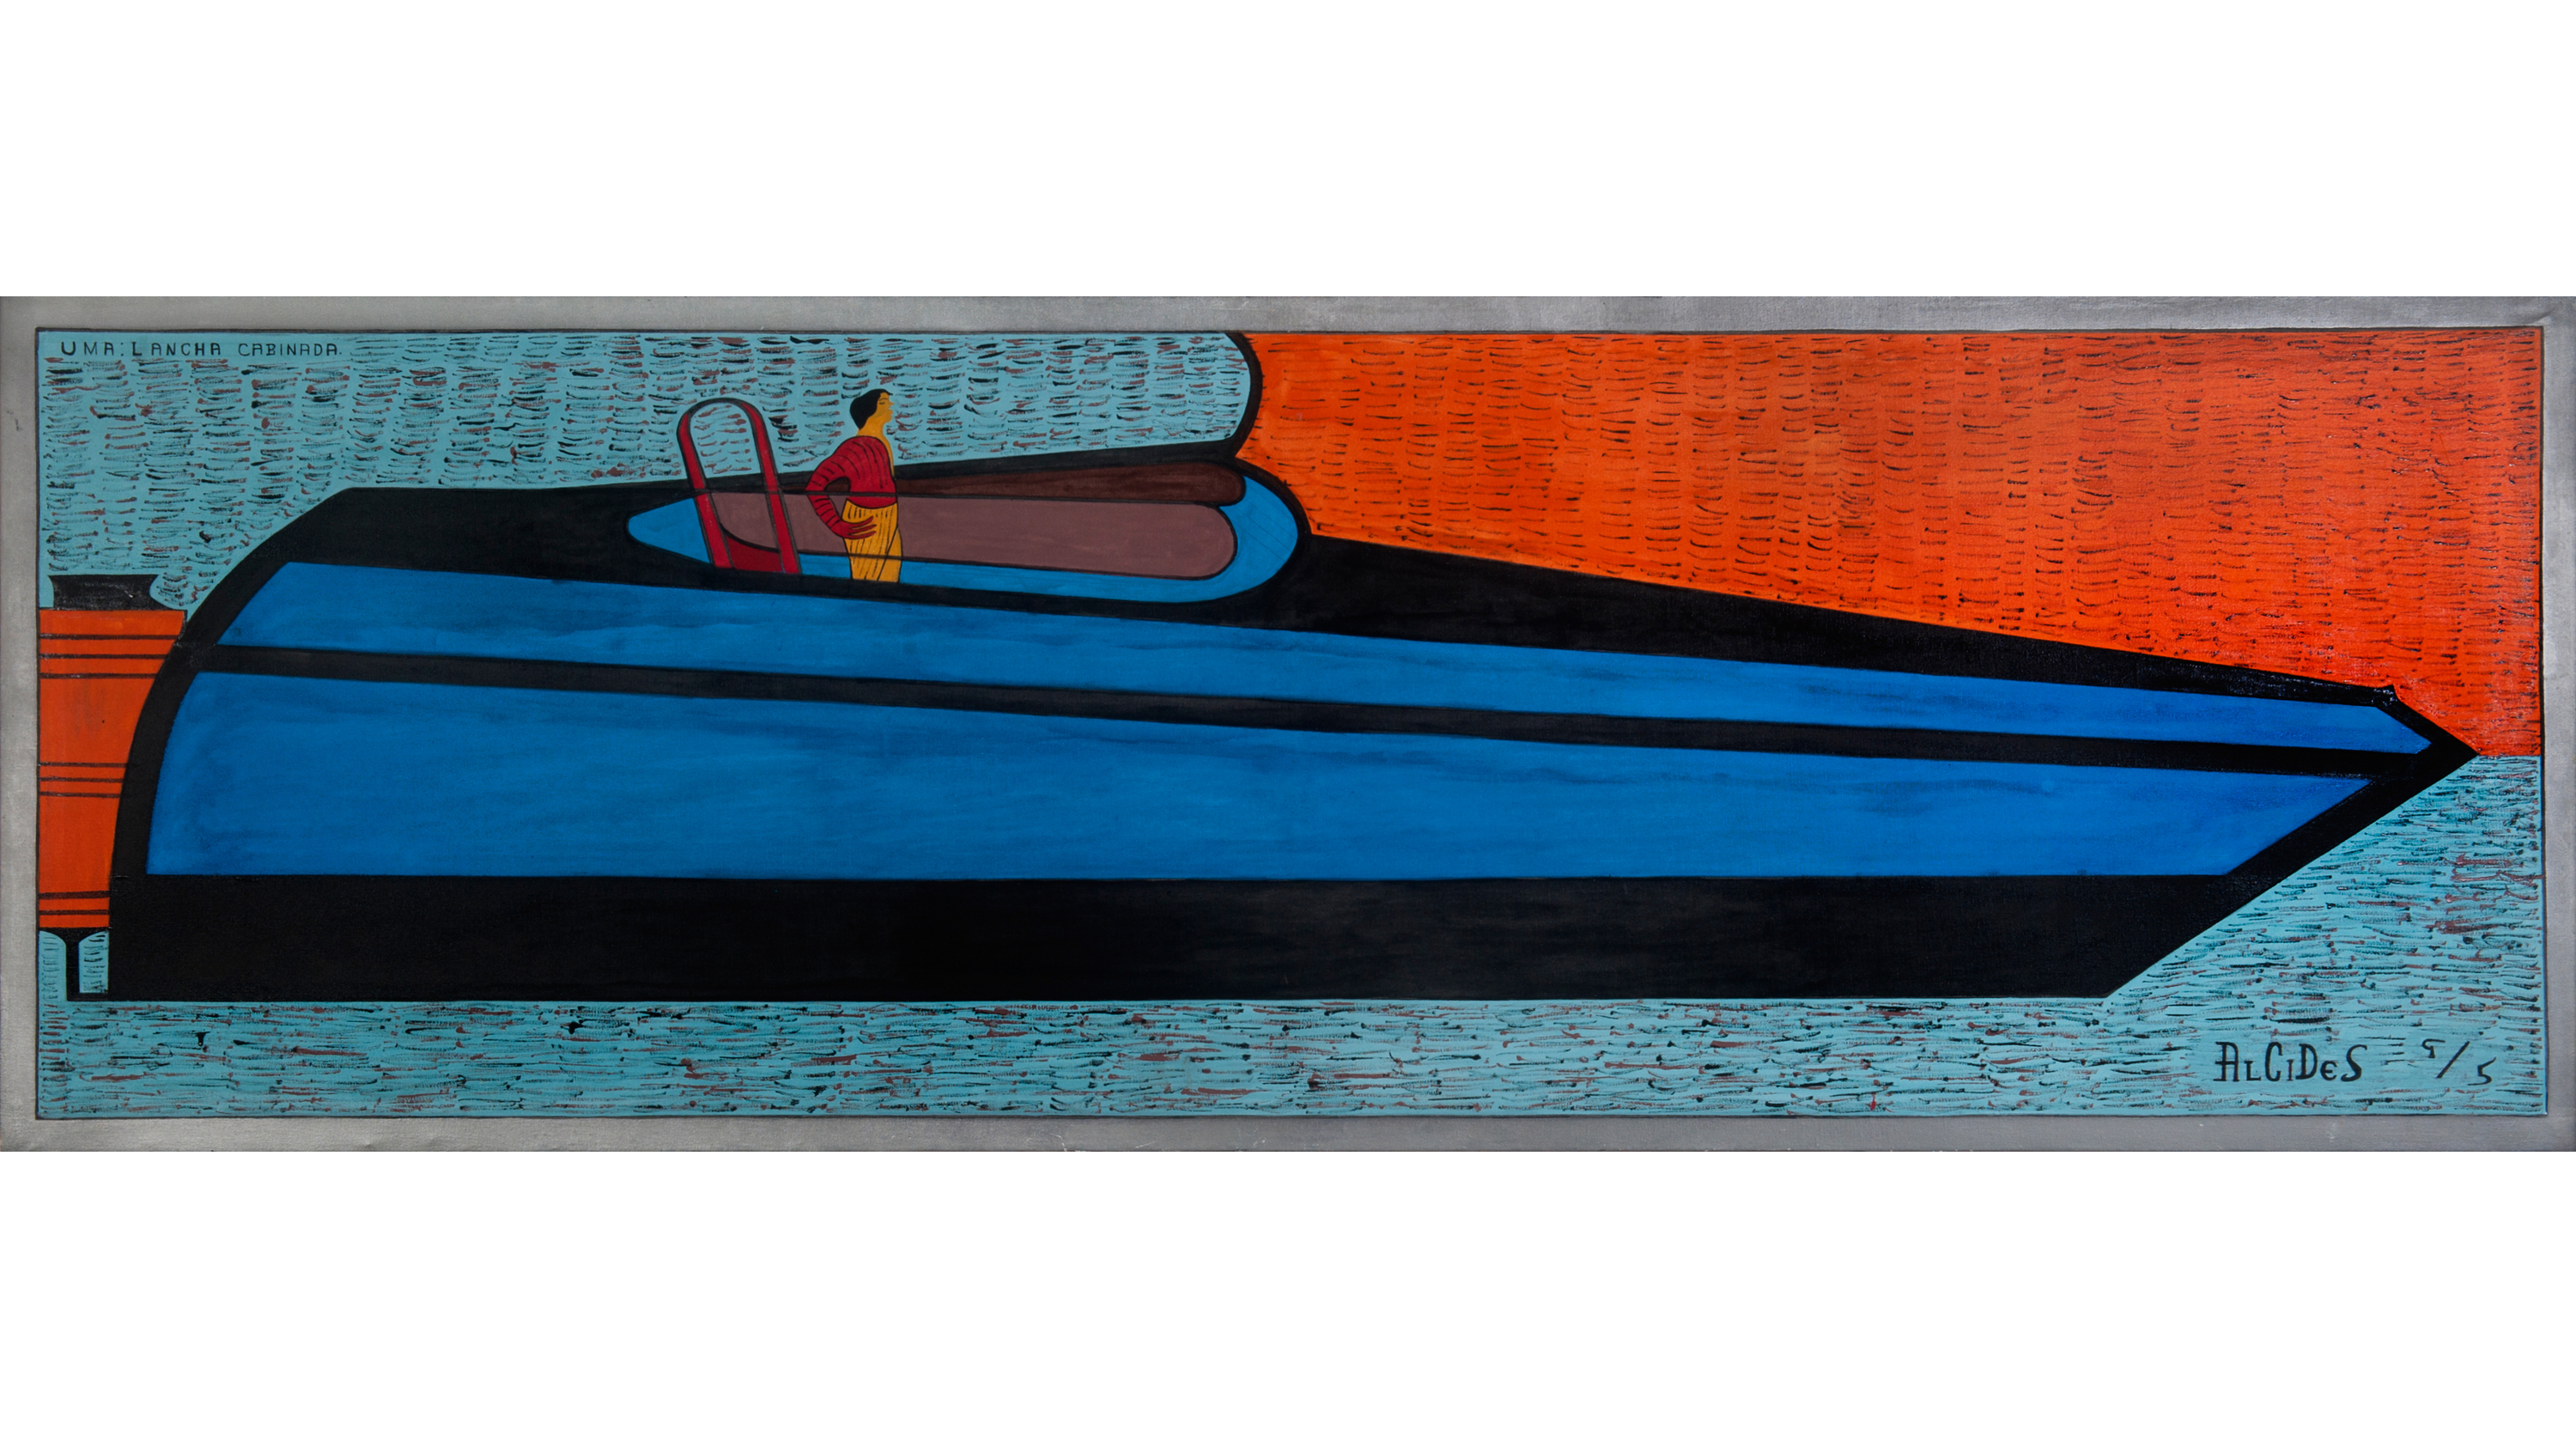 Alcides Pereira dos Santos, A boat cabin, 1995. Acrylic on canvas28.74 x 85.04 inches